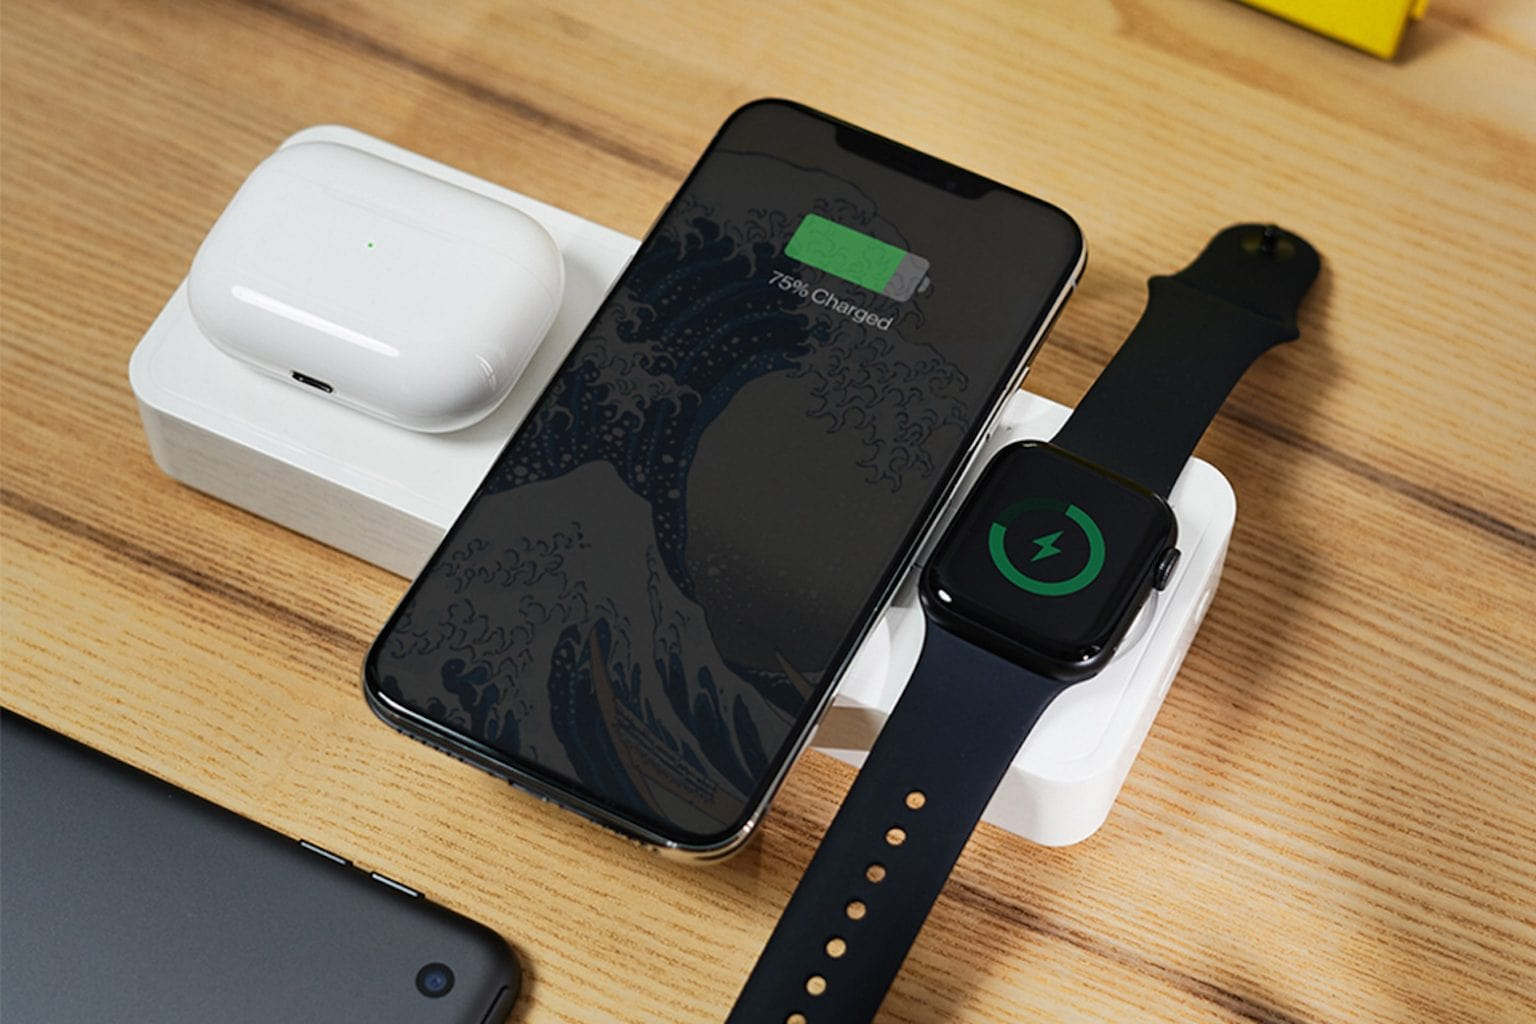 This multi-device wireless charger will electrify your summer